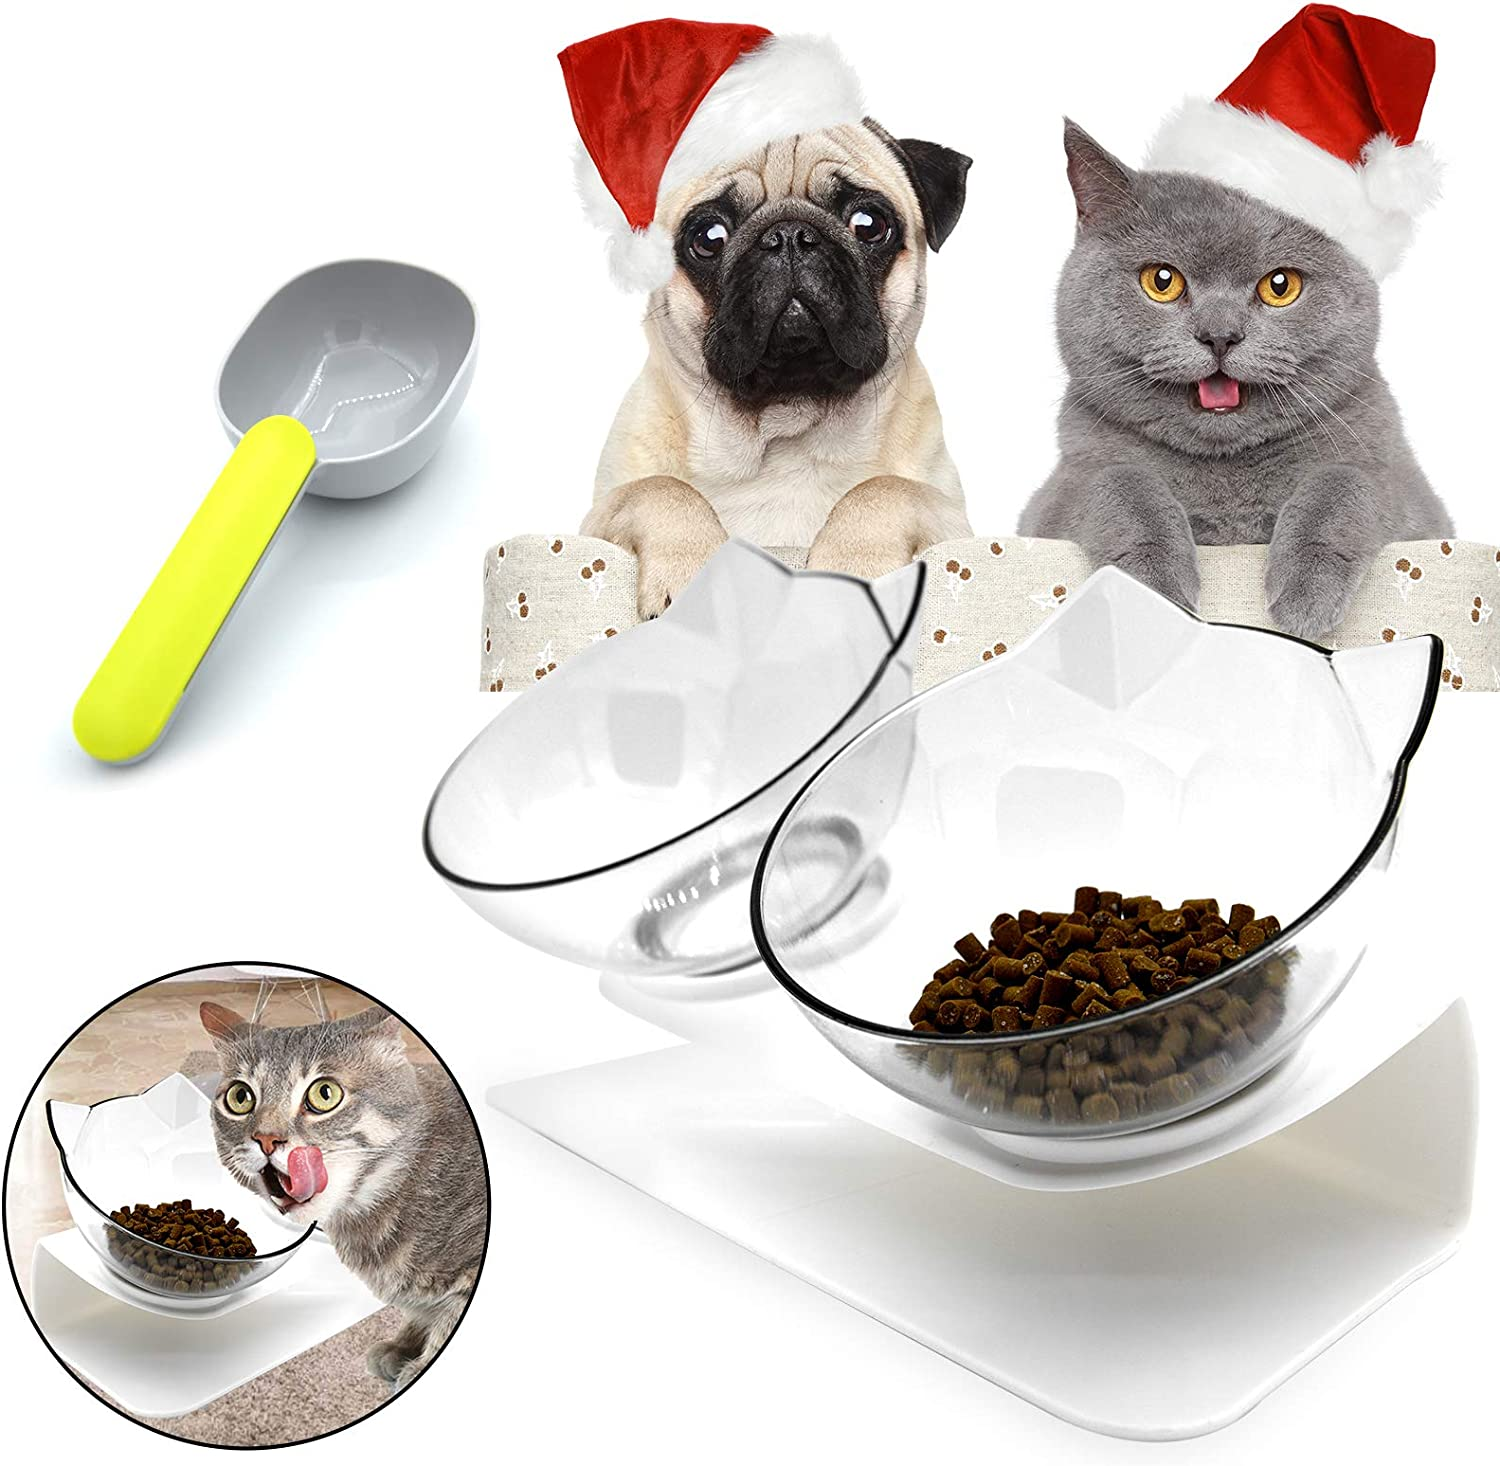 Hkapps Cat Double Food Bowl Pet Food Bowl with Stand,15° Tilted Platform, Reduce Neck Pain Perfect for Small Dog and Cat (Transparent)